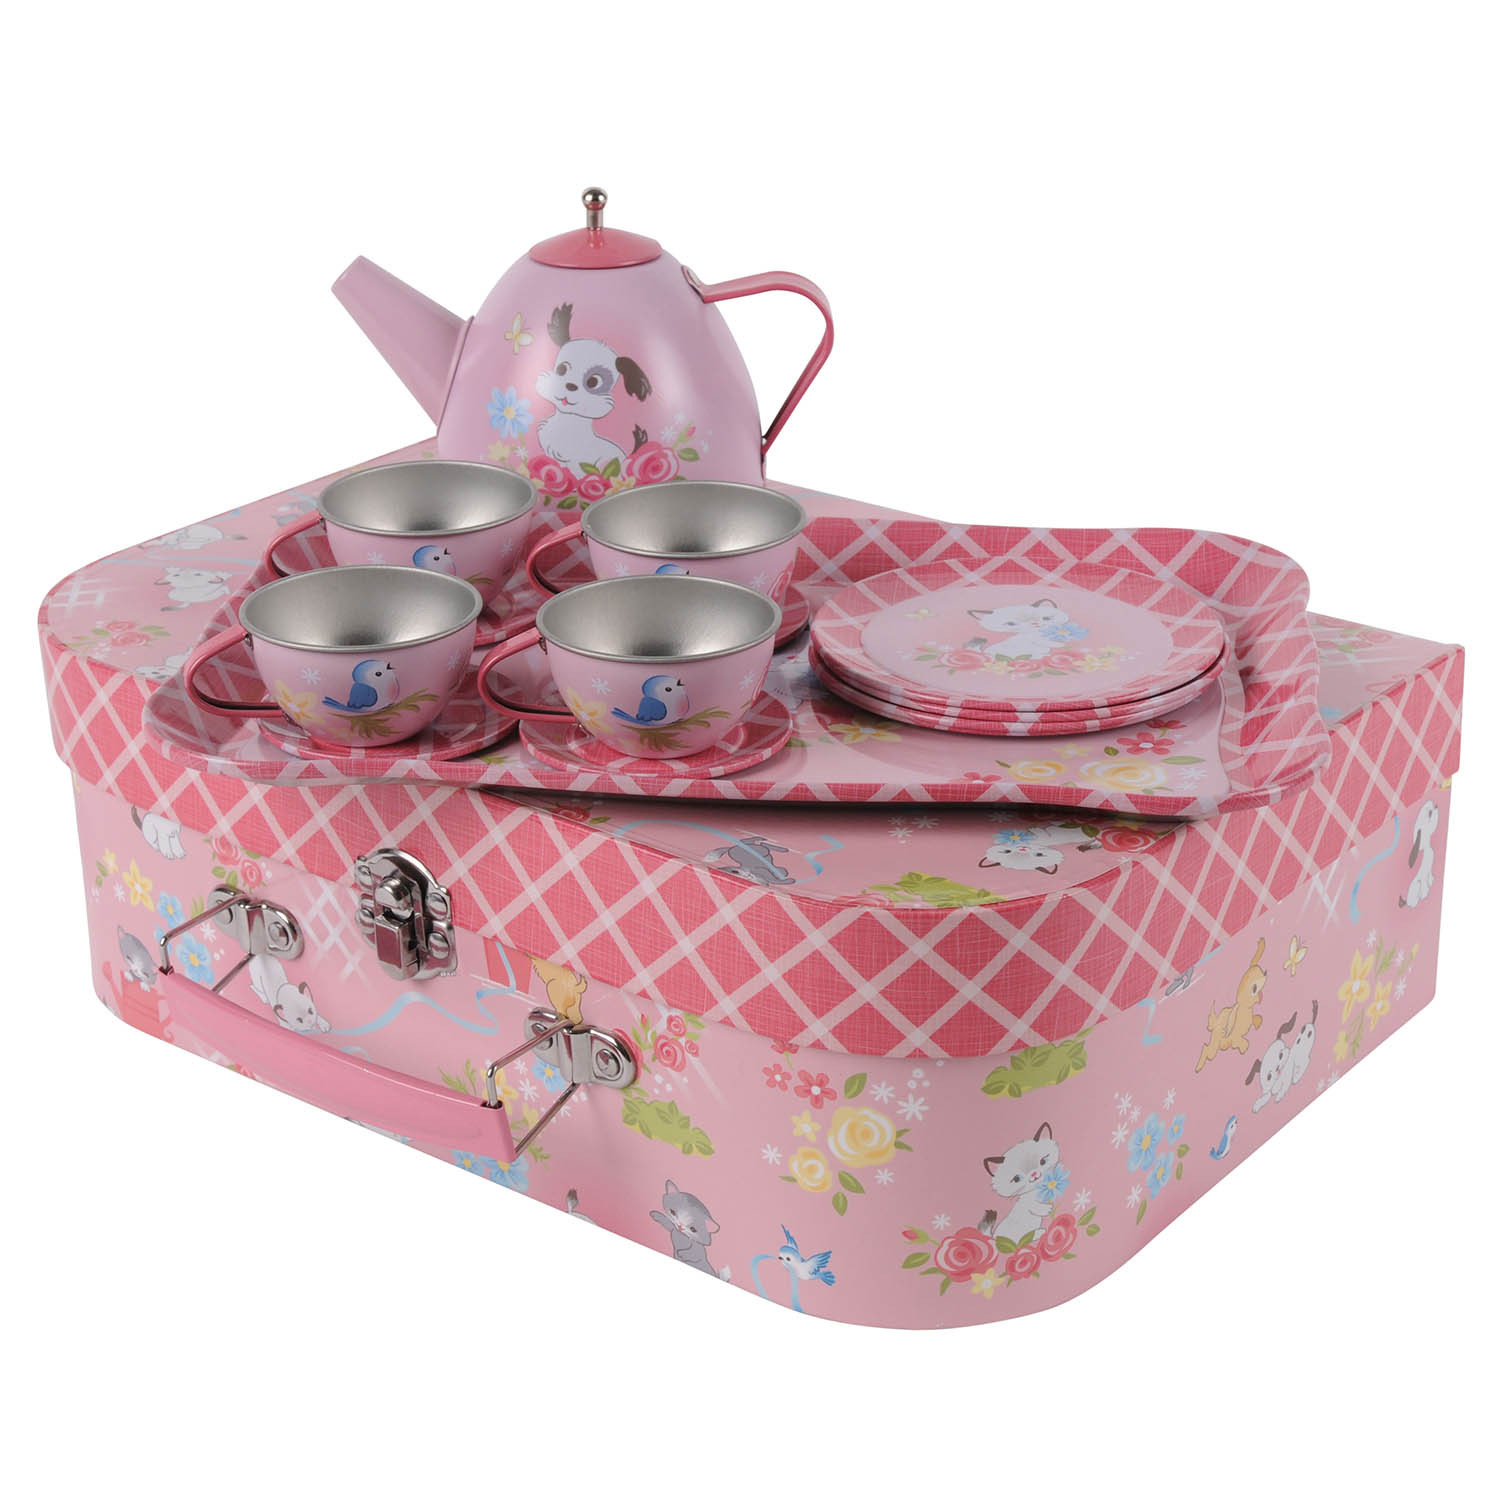 Vintage Tin Tea set in Kittens & Puppies Design in a case by Tiger Tribe